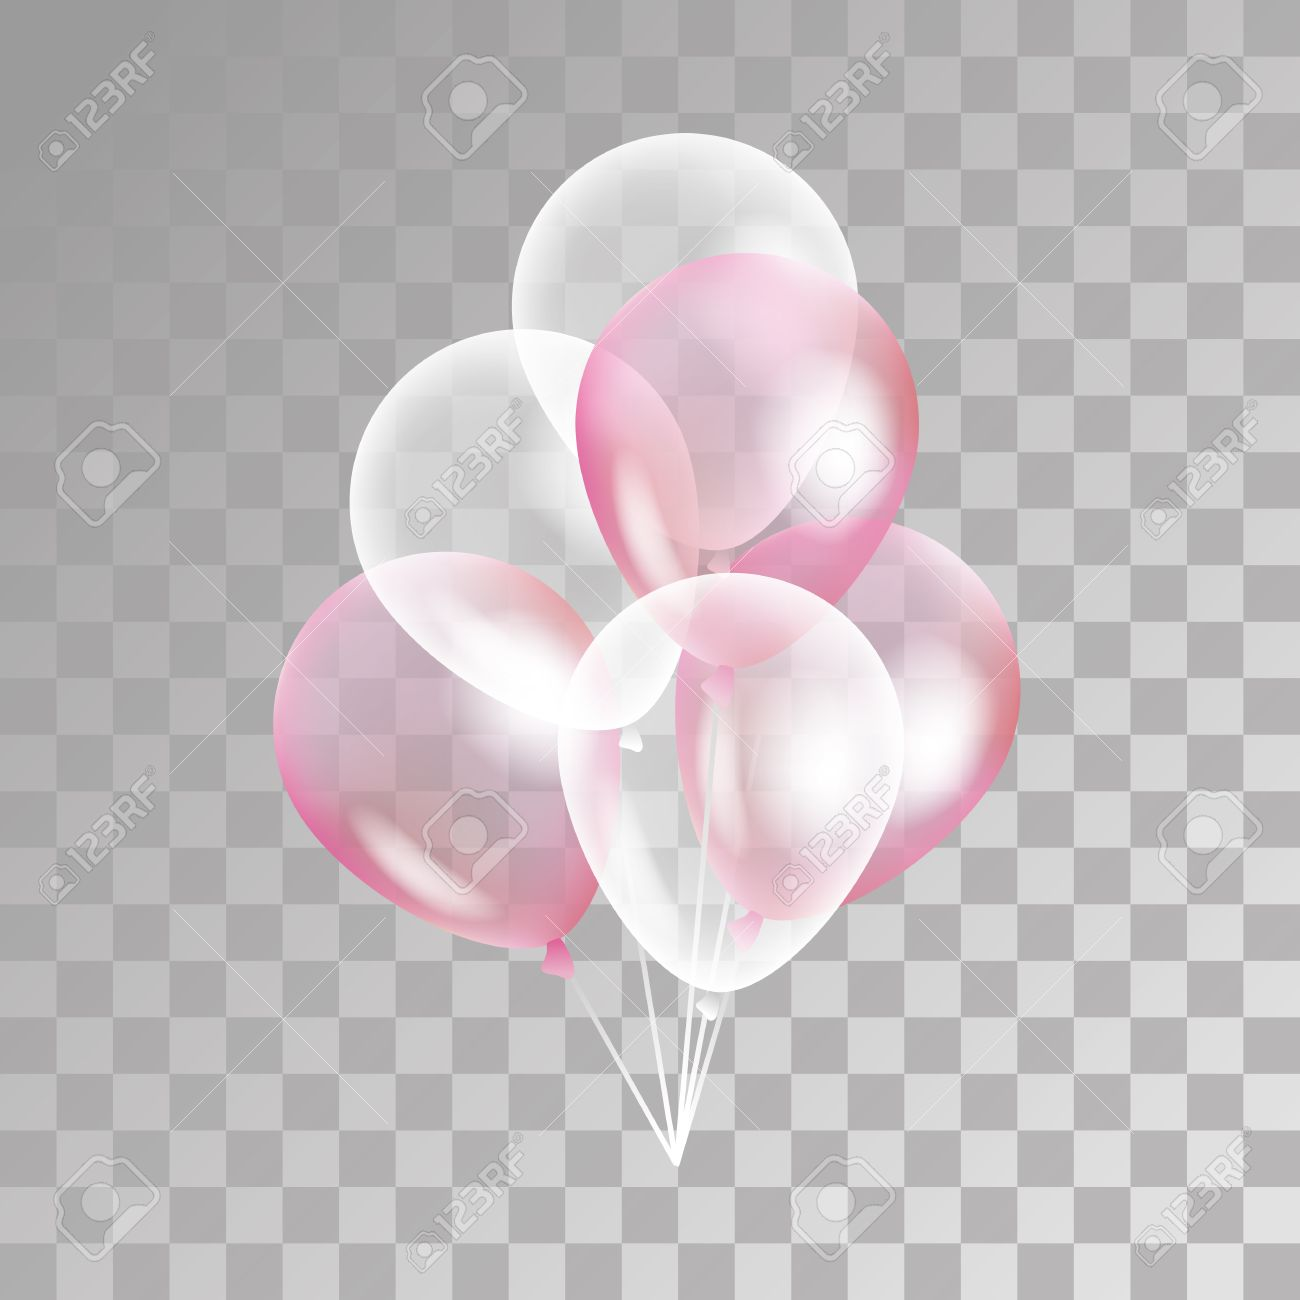 Pink transparent balloon on background. Frosted party balloons for event design. Balloons isolated in the air. Party decorations for birthday, anniversary, celebration. Shine transparent balloon. - 63415801